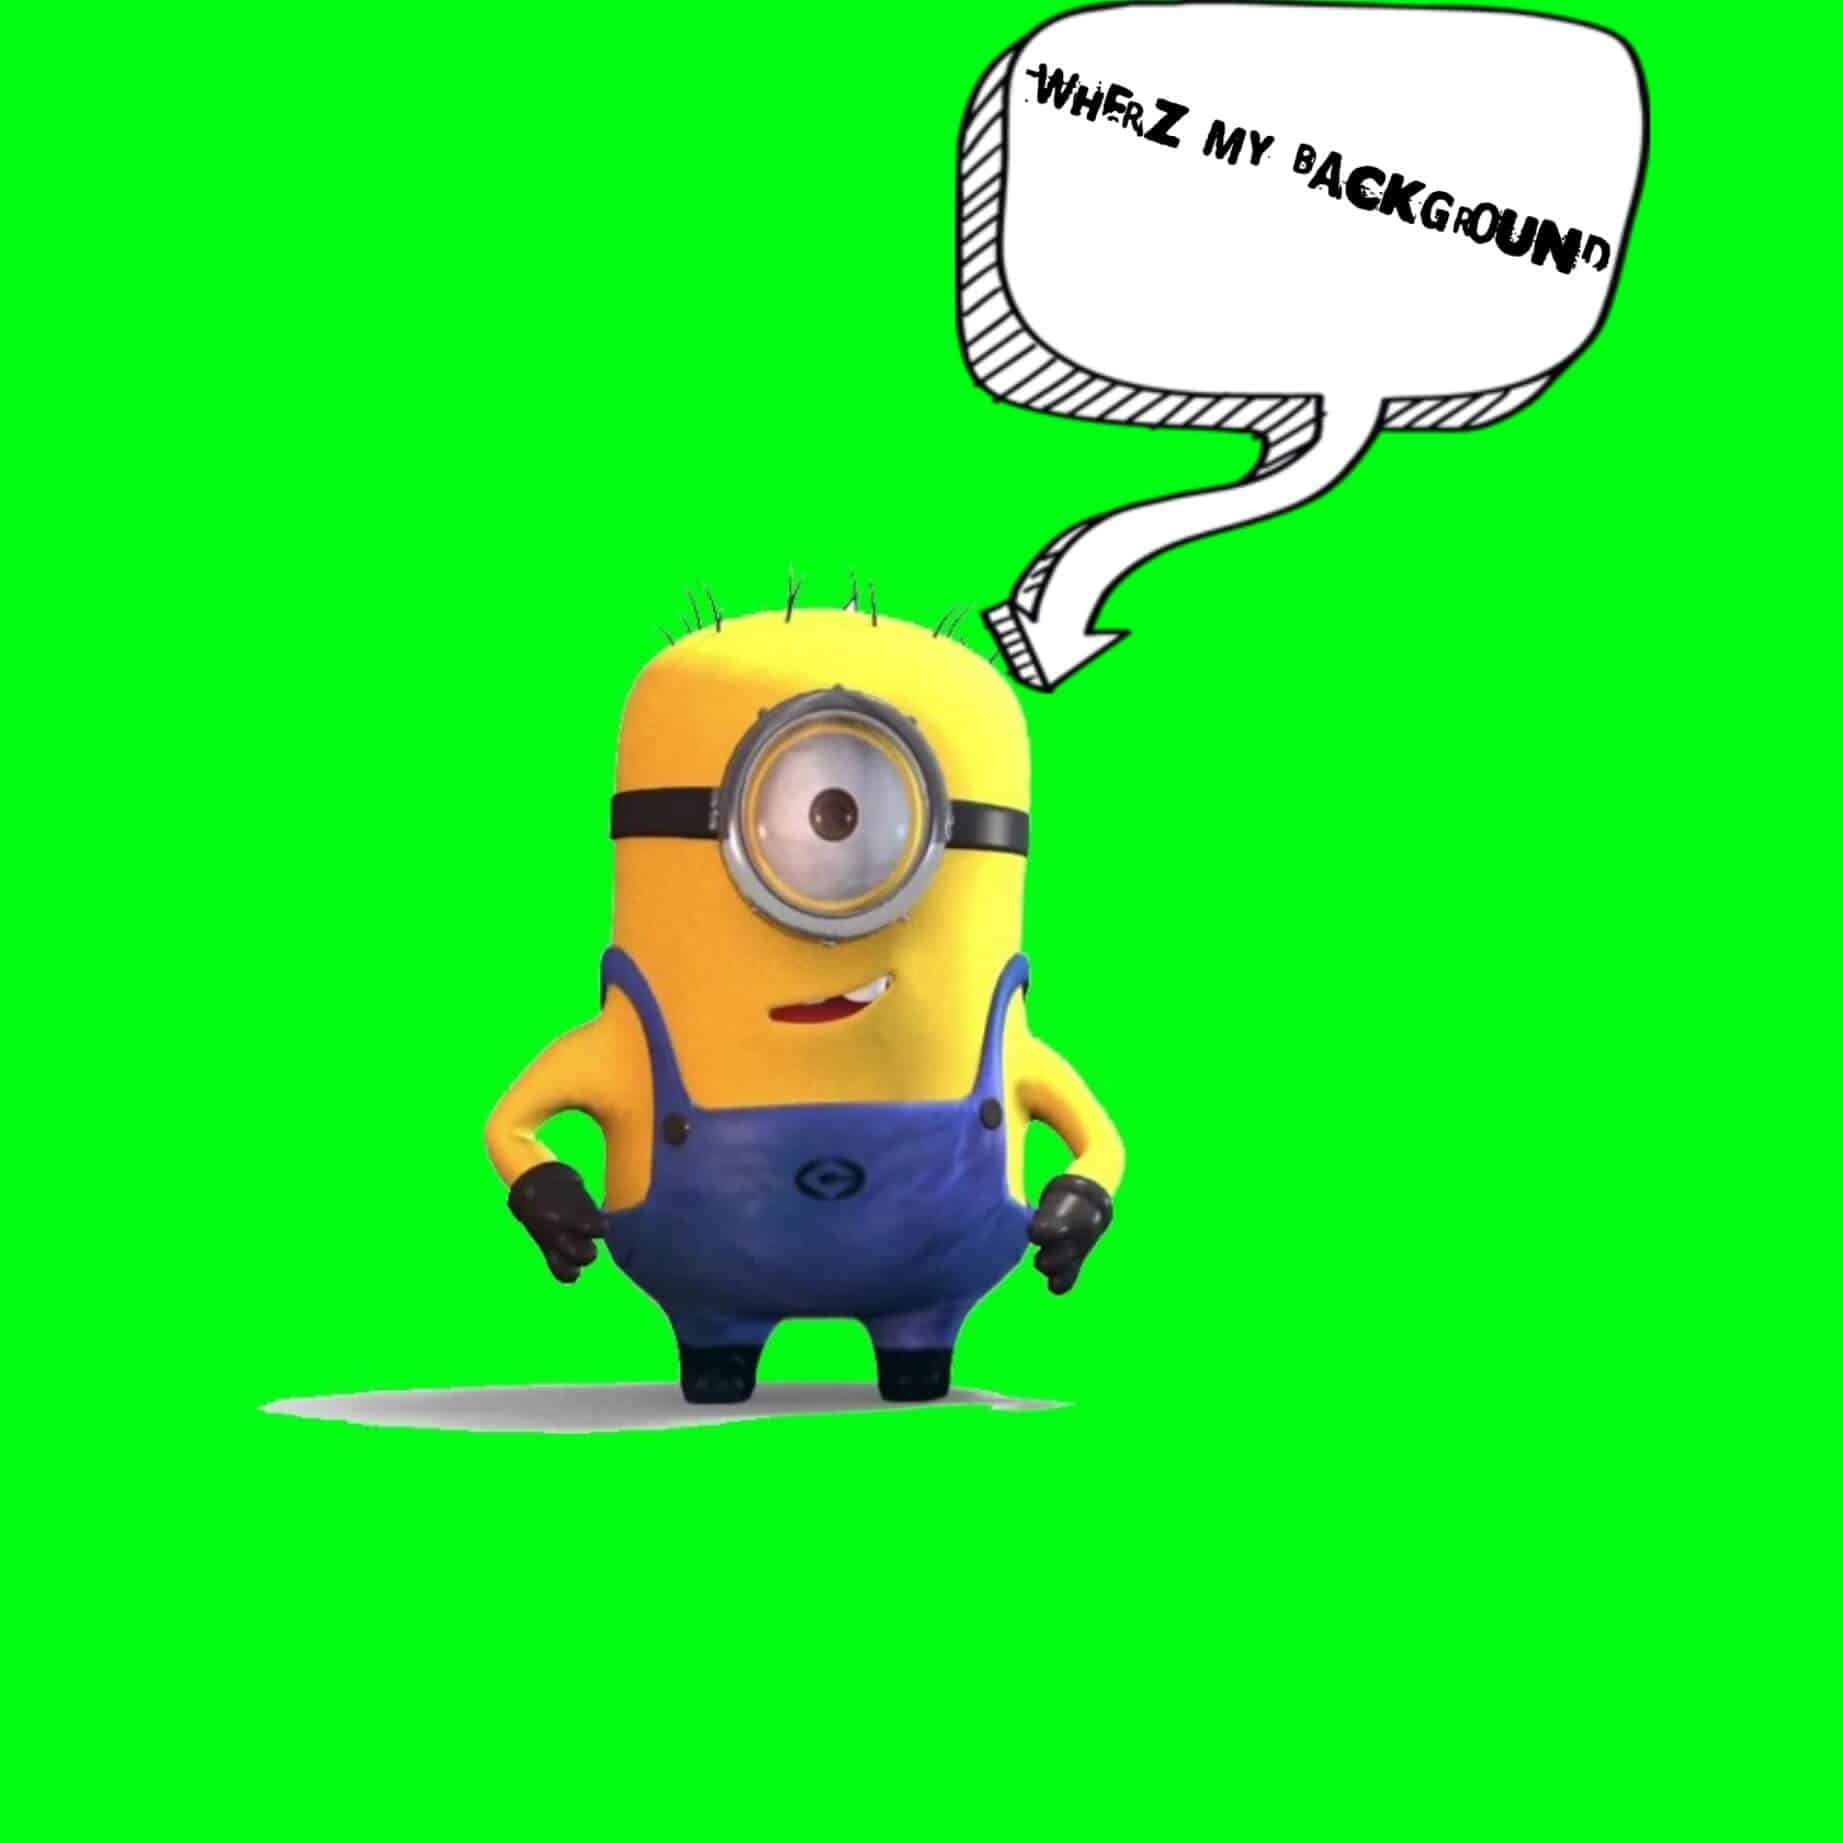 Green screen with a Minion as subject